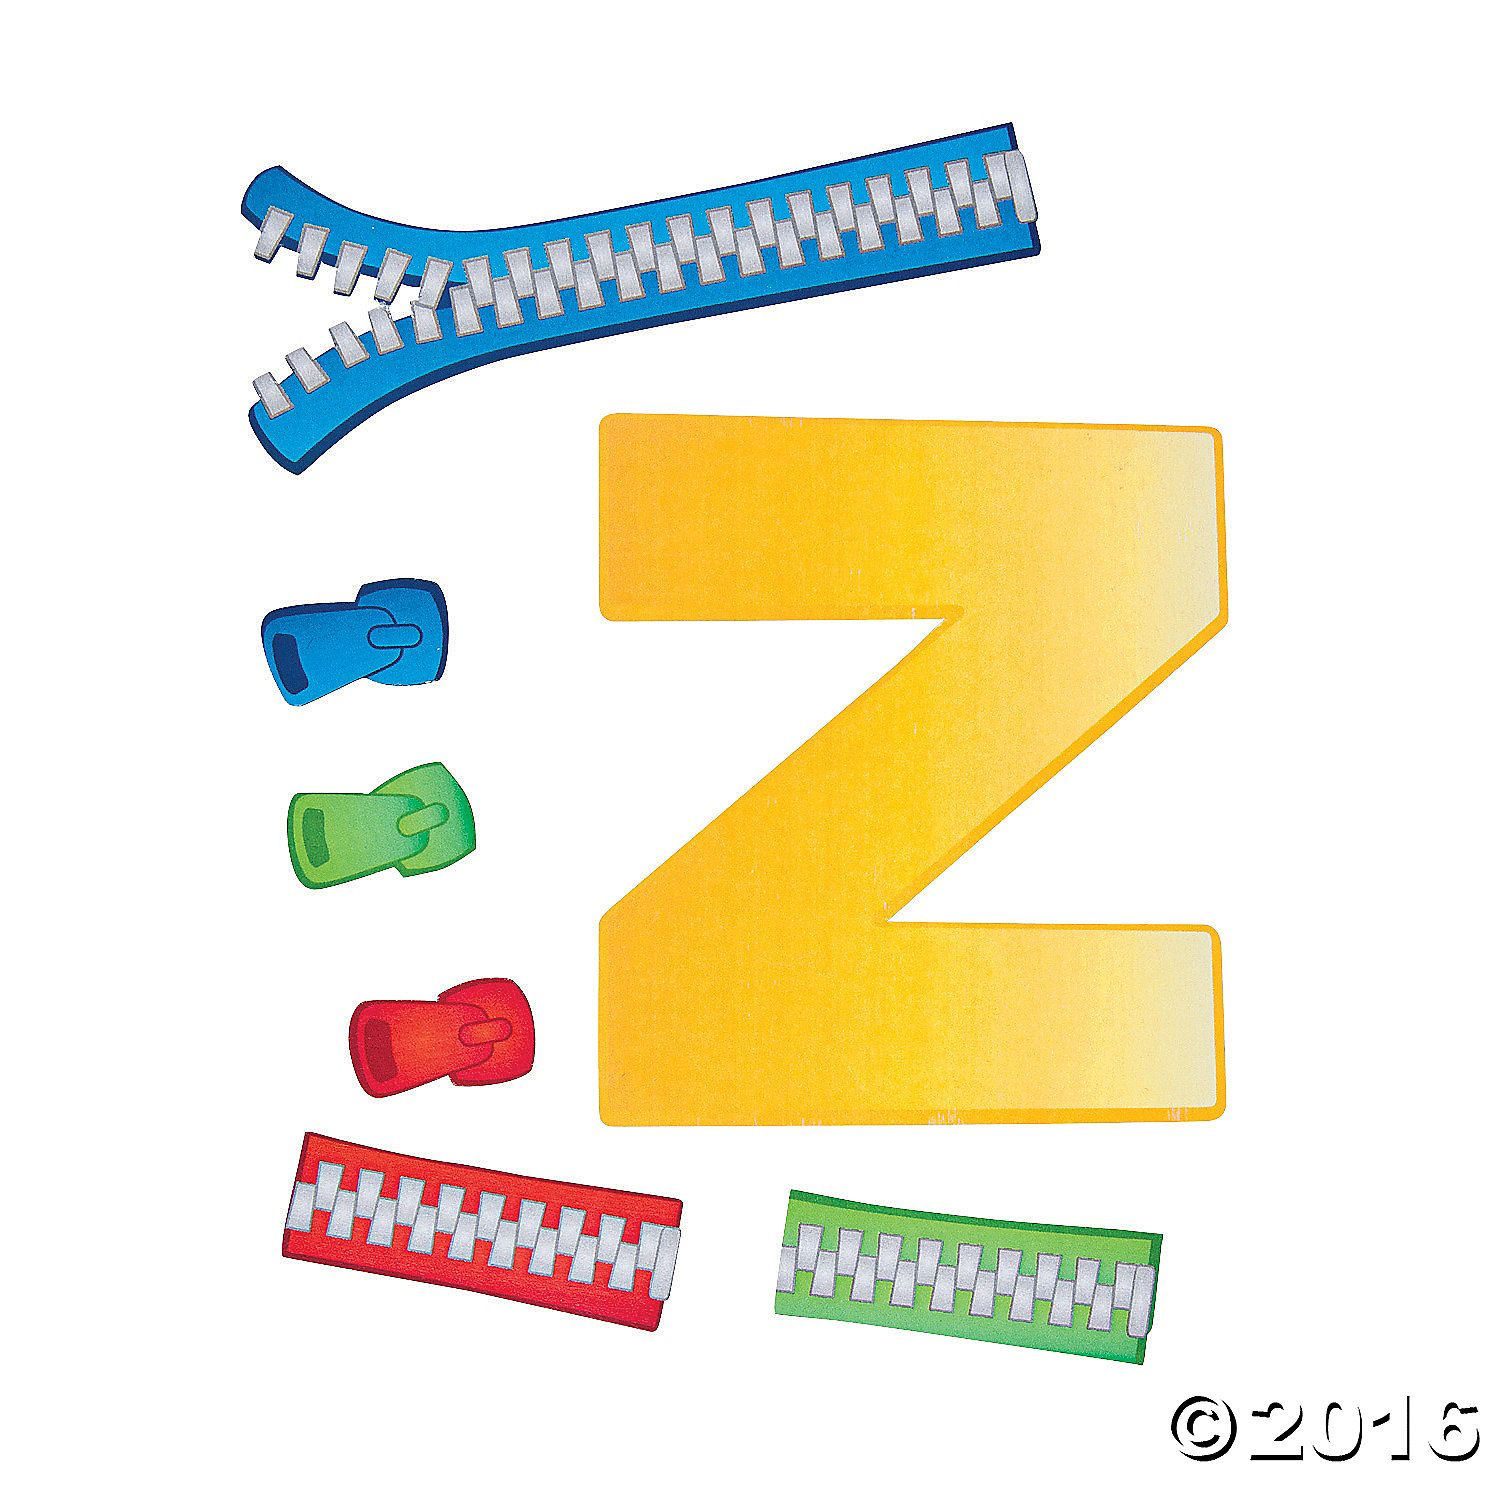 Z-is-for-zipper-lowercase-letter-z-craft-kit~13603482-a01